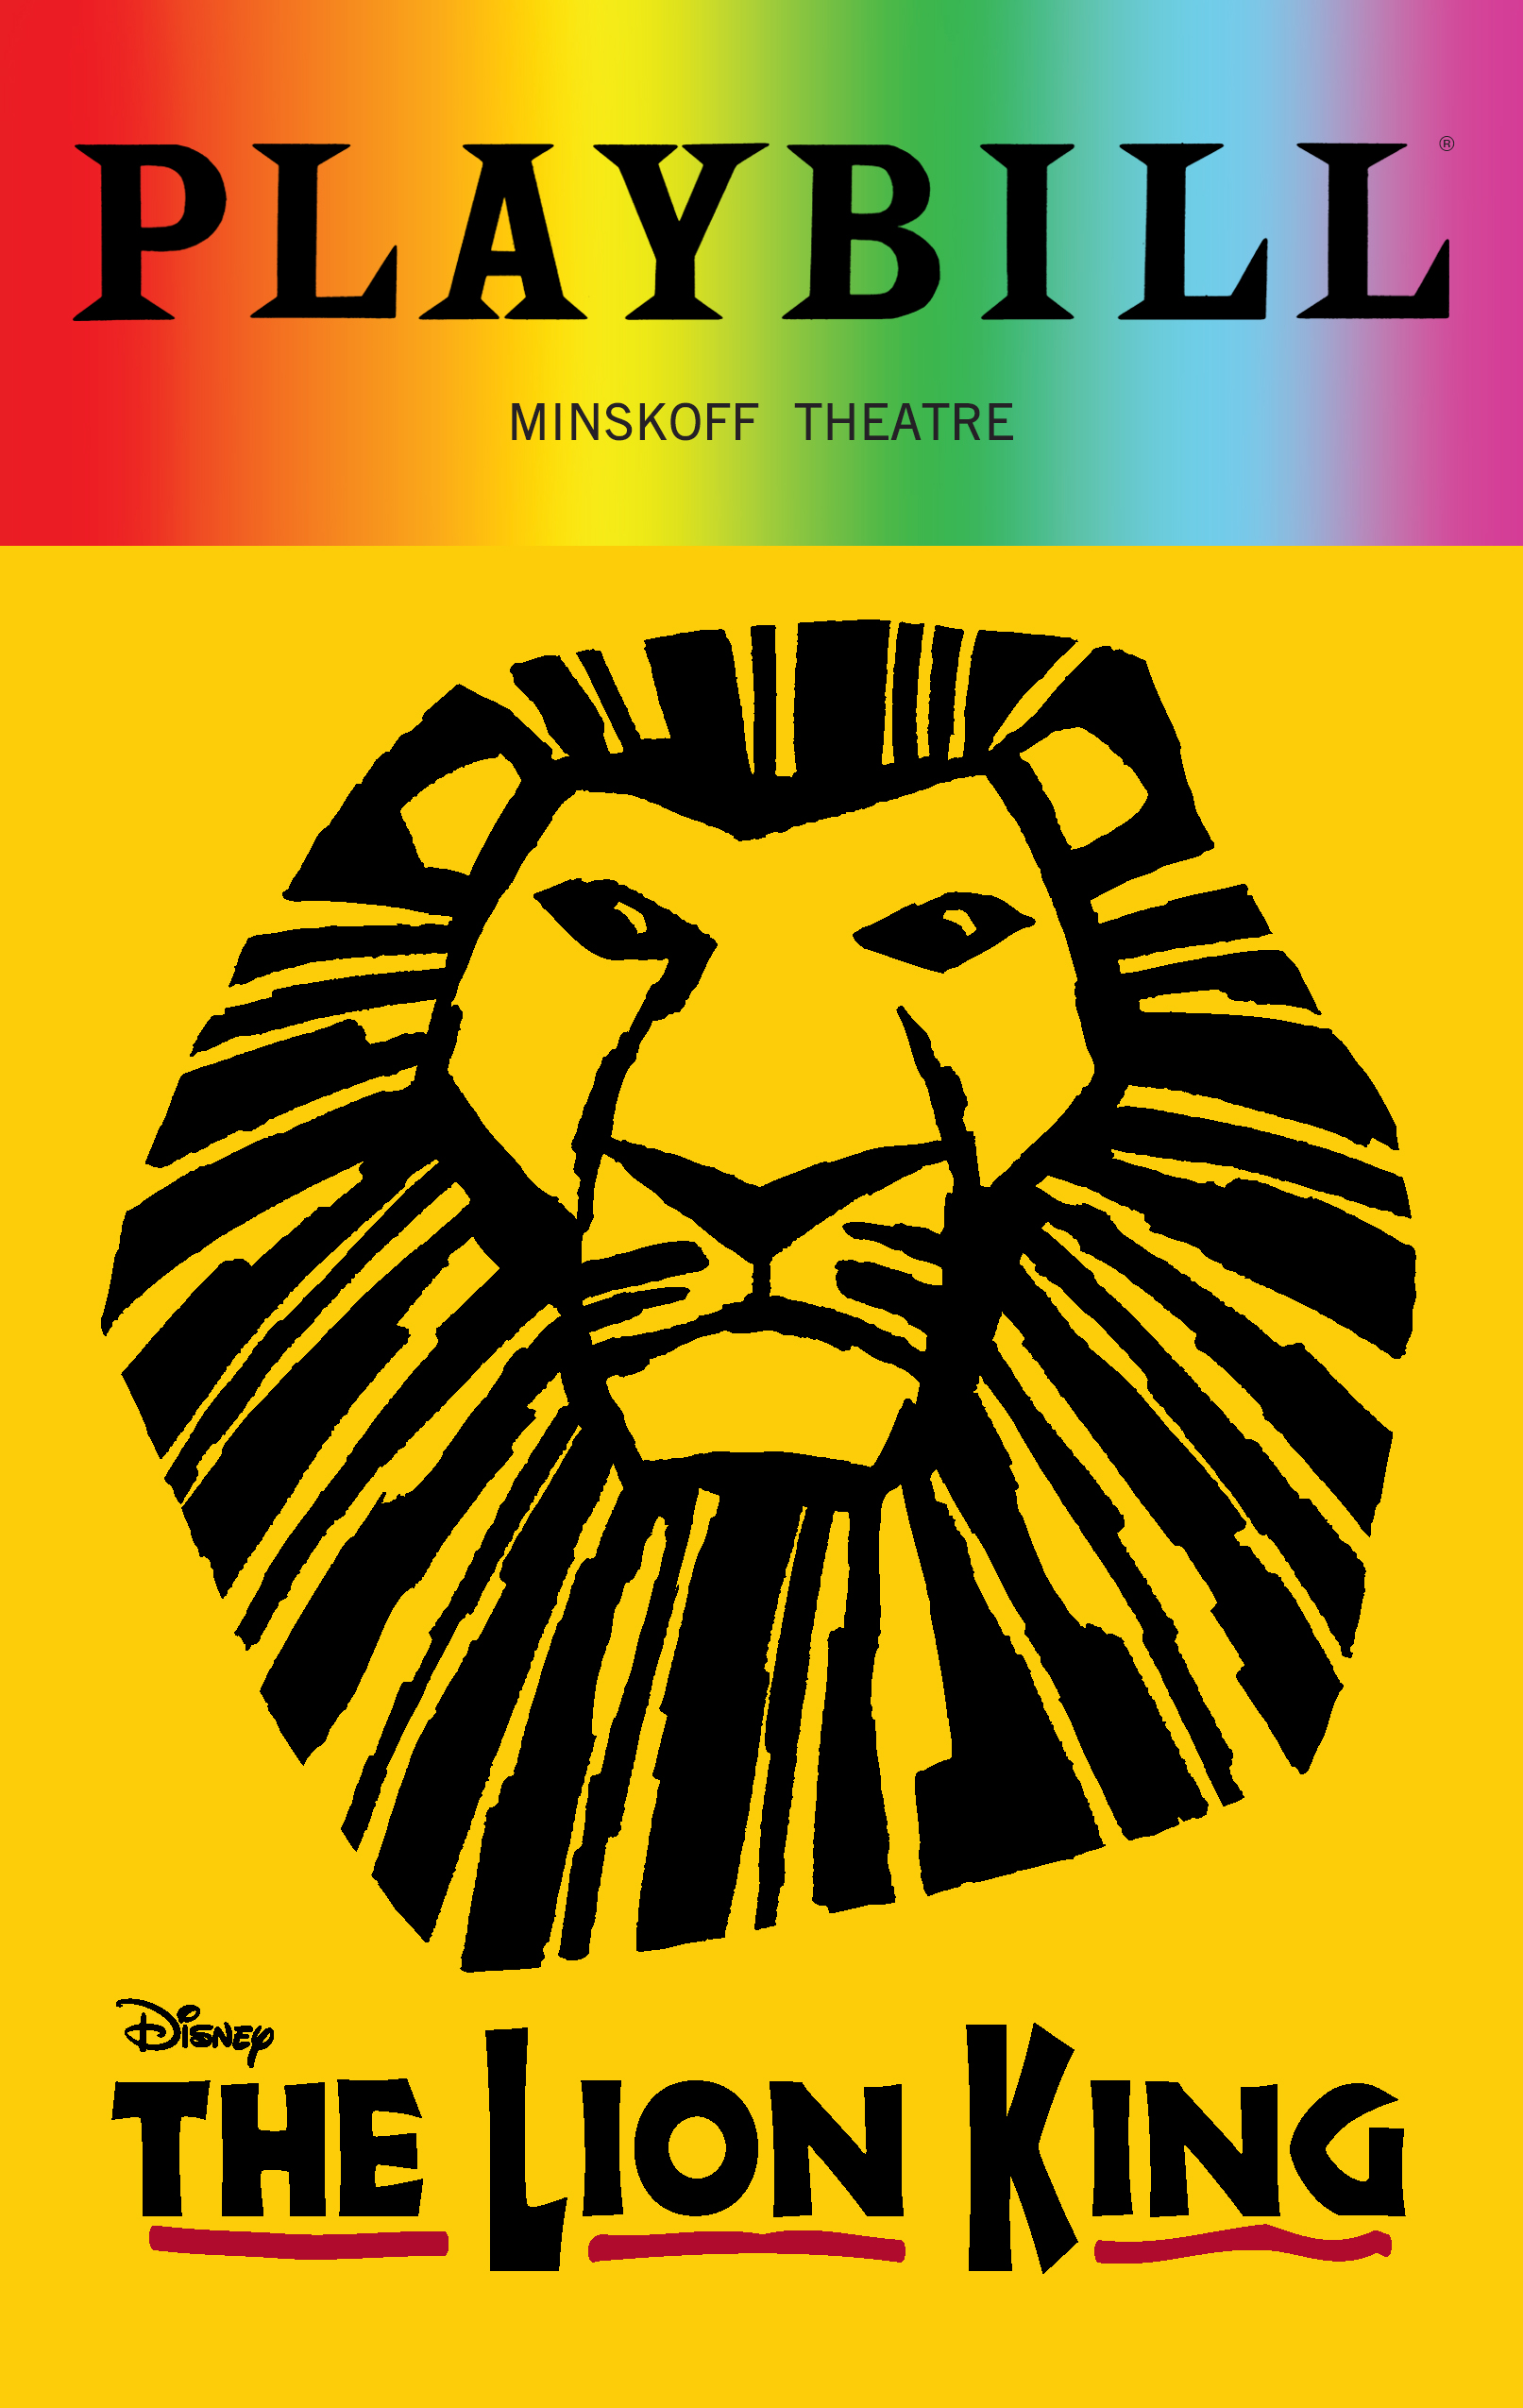 The Lion King June 2018 Playbill With Rainbow Pride Logo